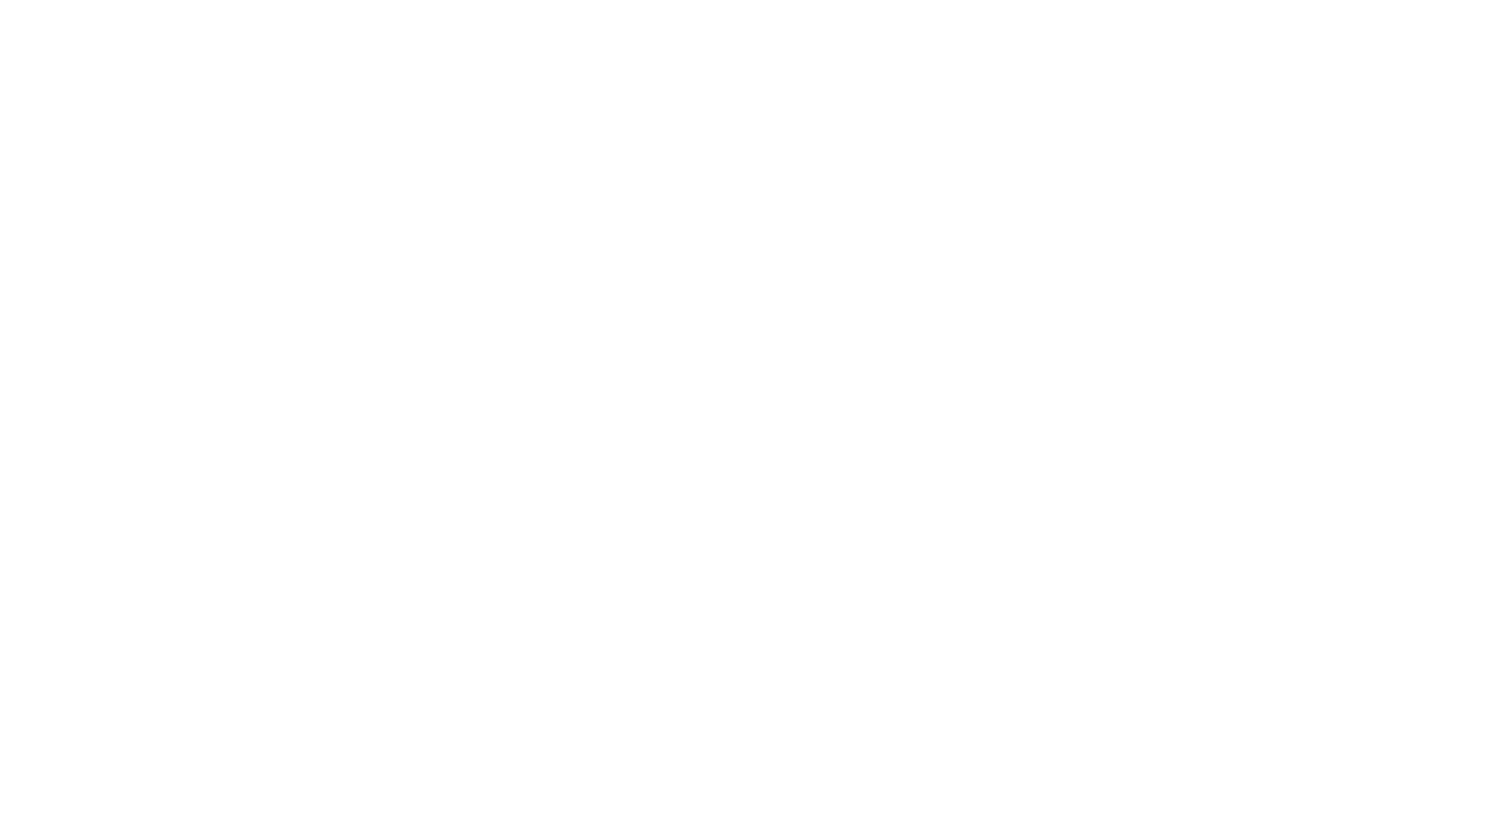 HILL COLLECTIVE